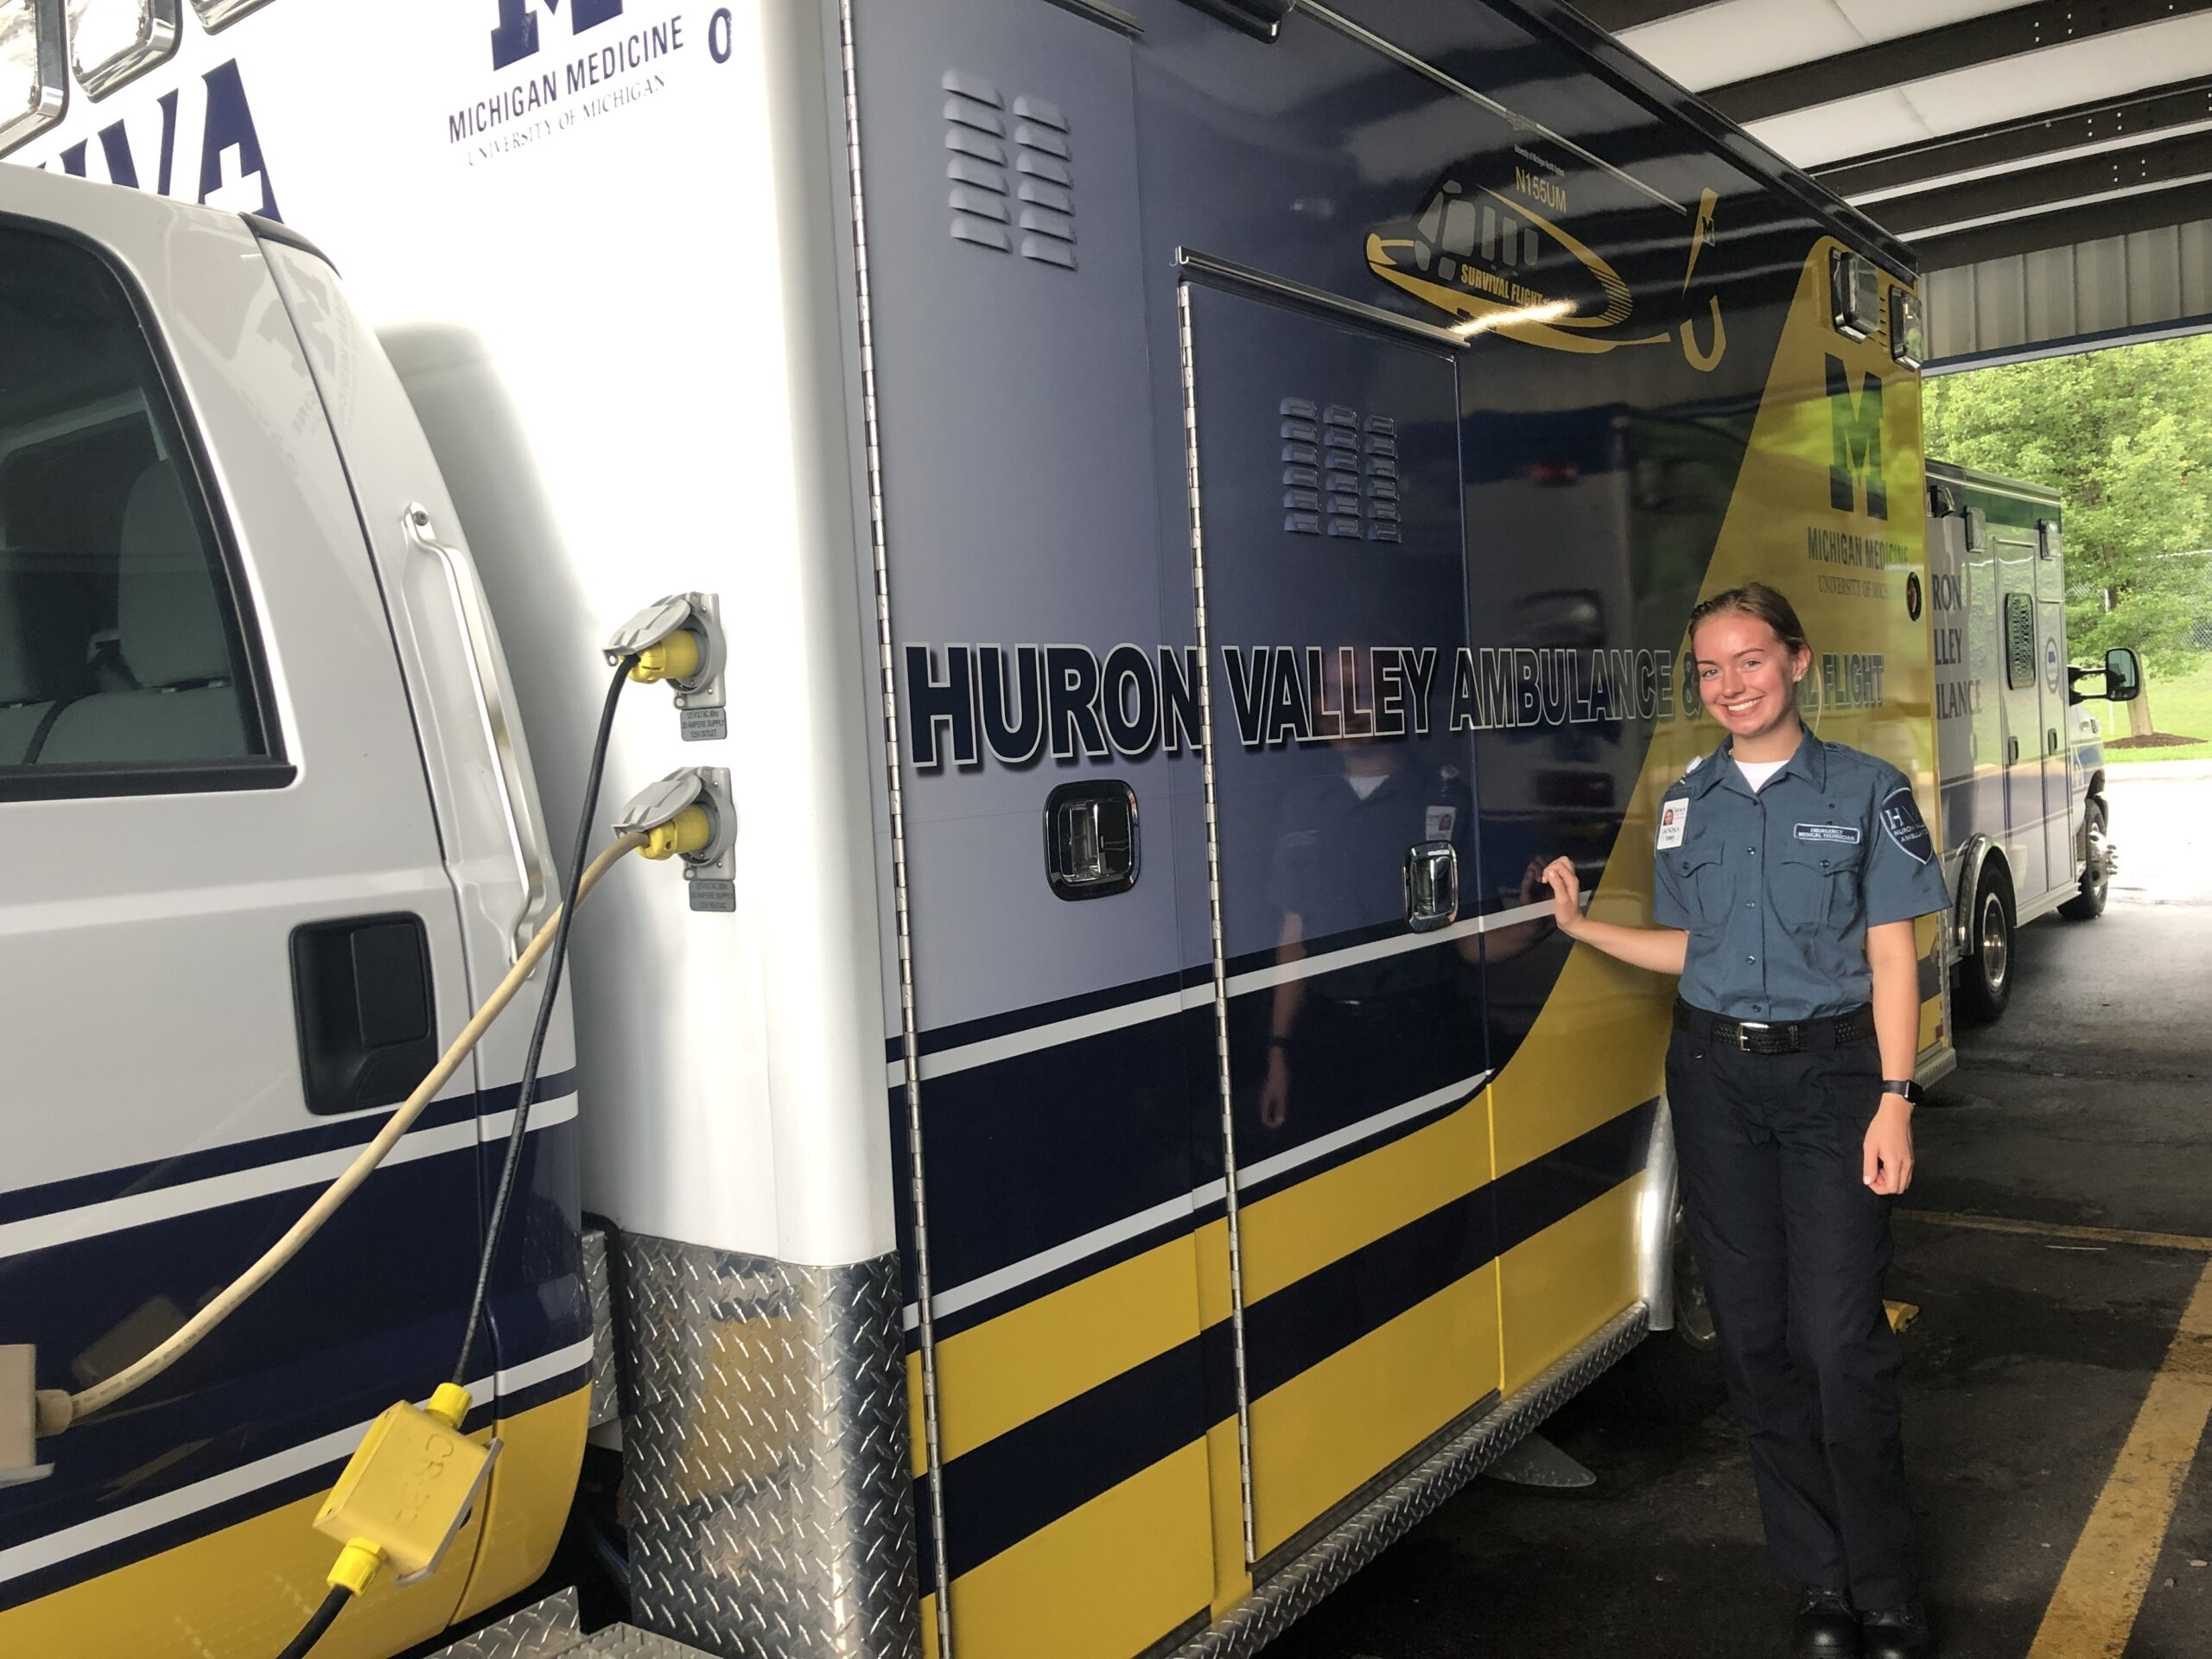 Anna Loughman, a neuroscience major at the University of Michigan, works part time as an EMT. Image credit: Anna Loughman